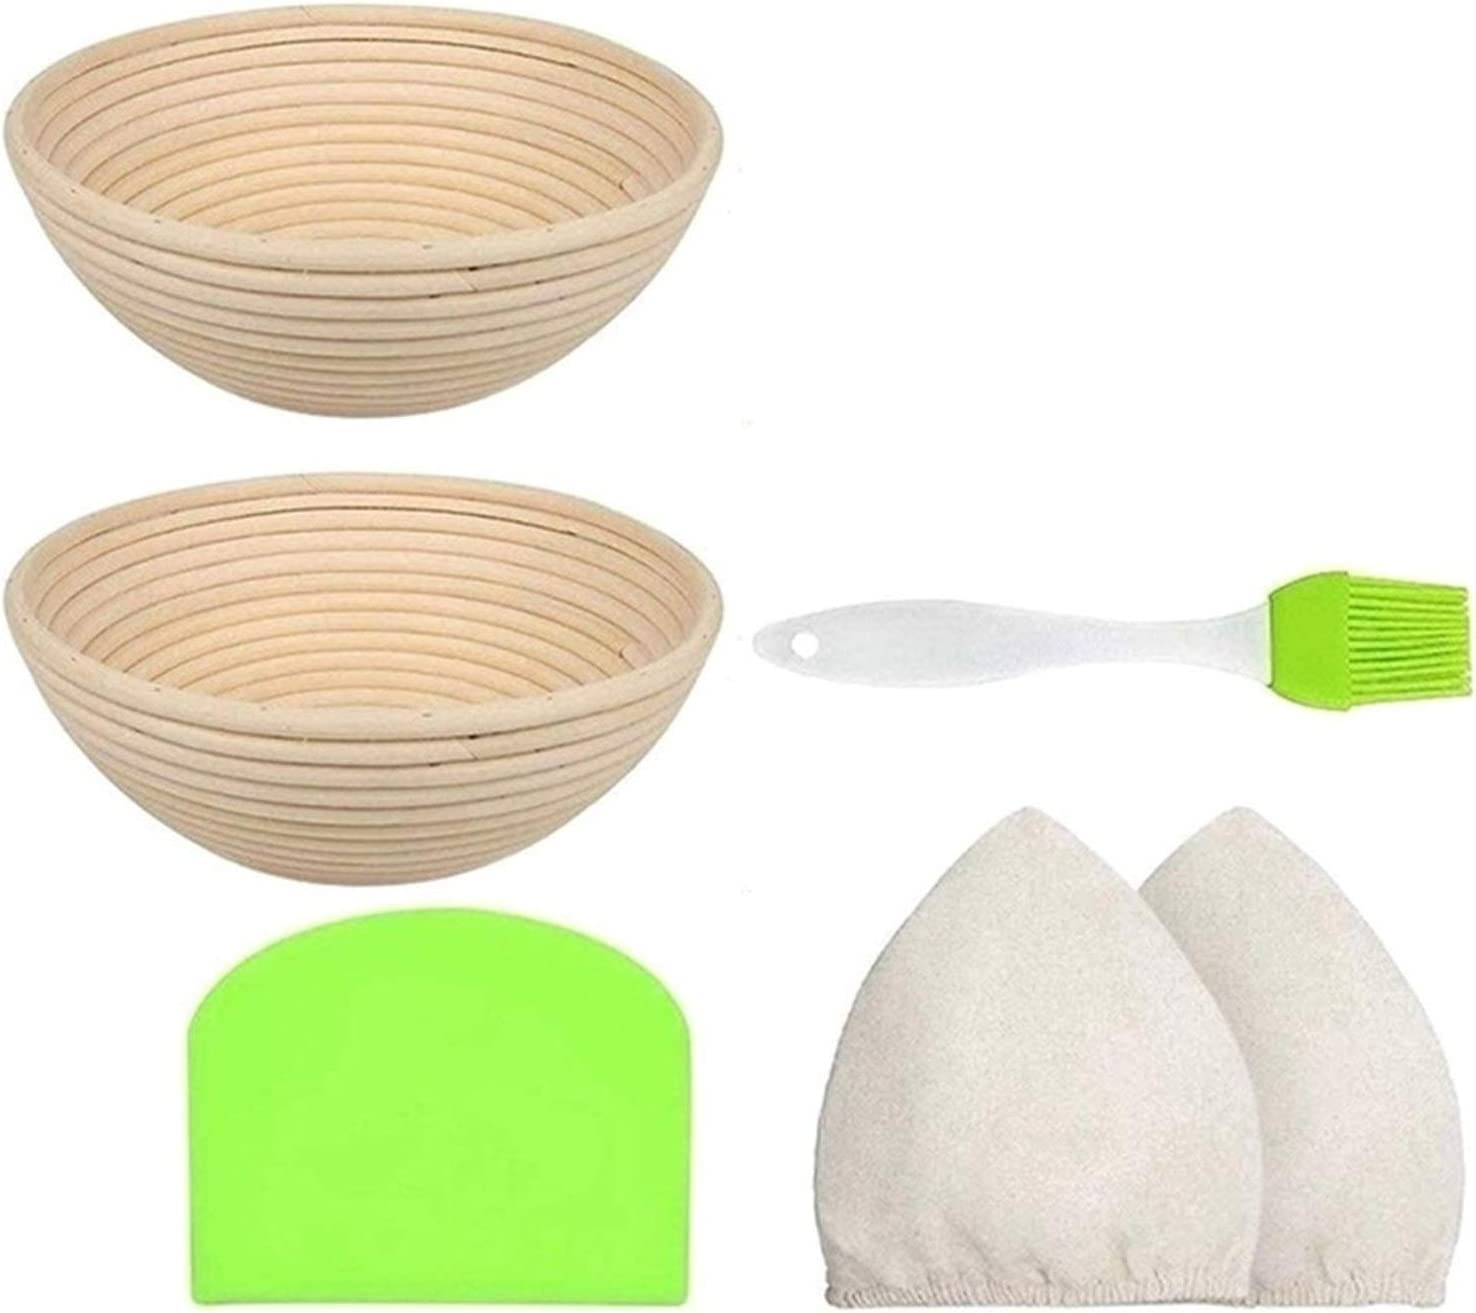 YWSZY Bread Proofing Baskets Baske Special price Round Ranking TOP3 Bowl Set